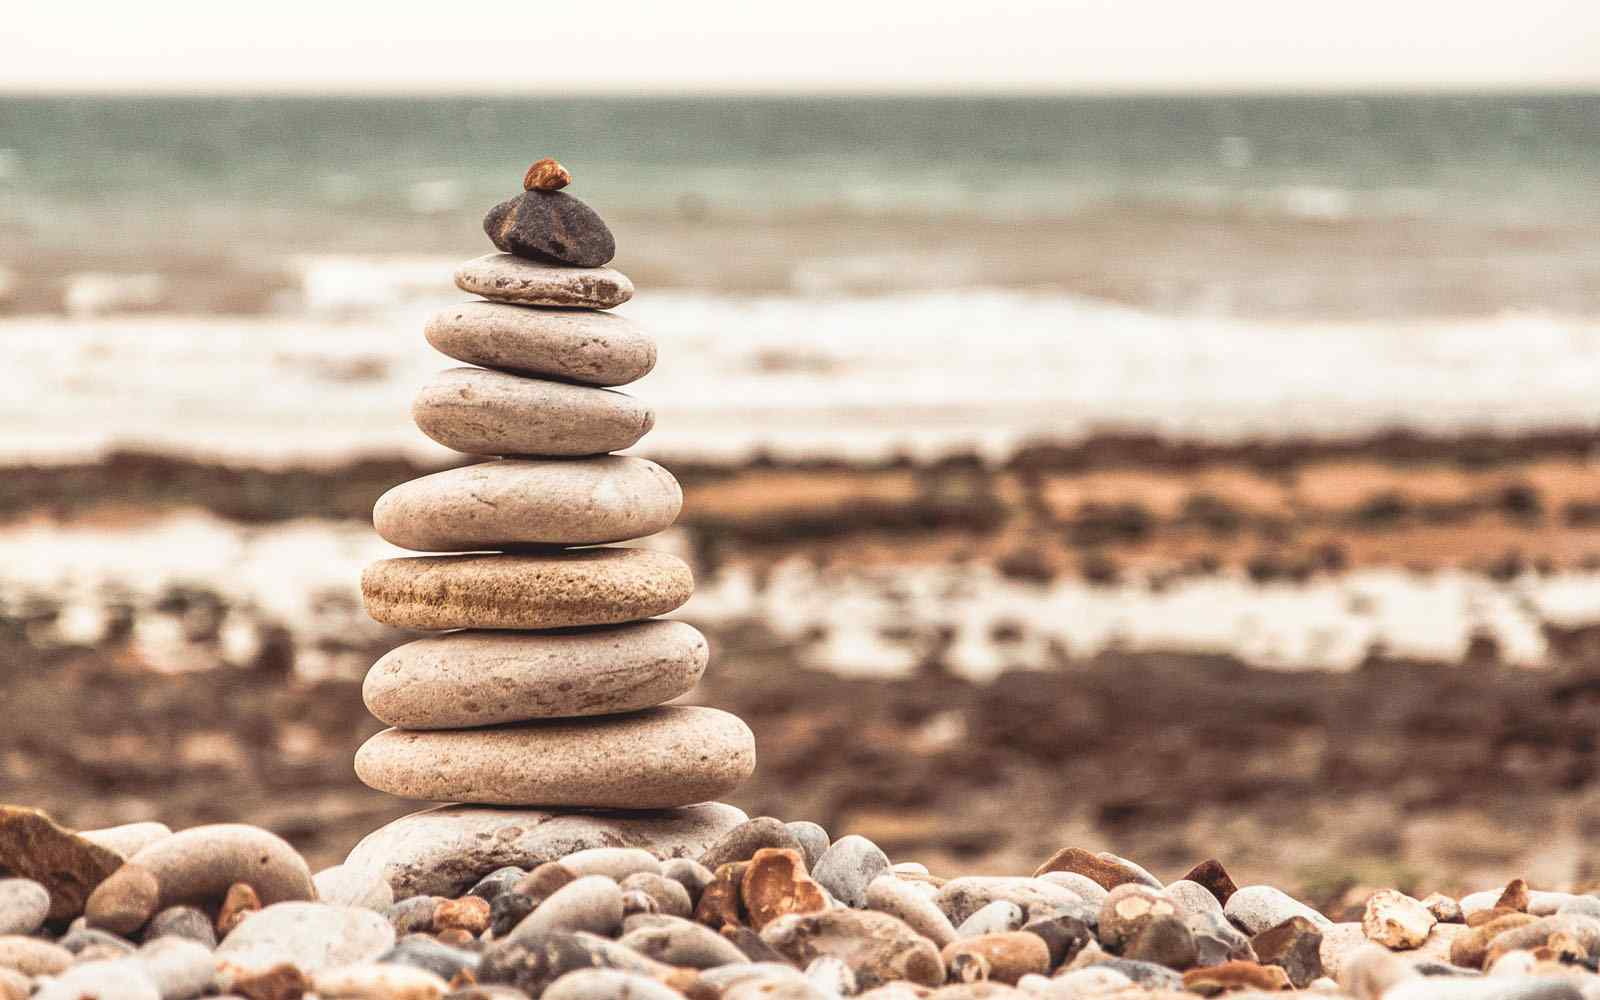 Tower of pebbles on a beach with the sea in the background